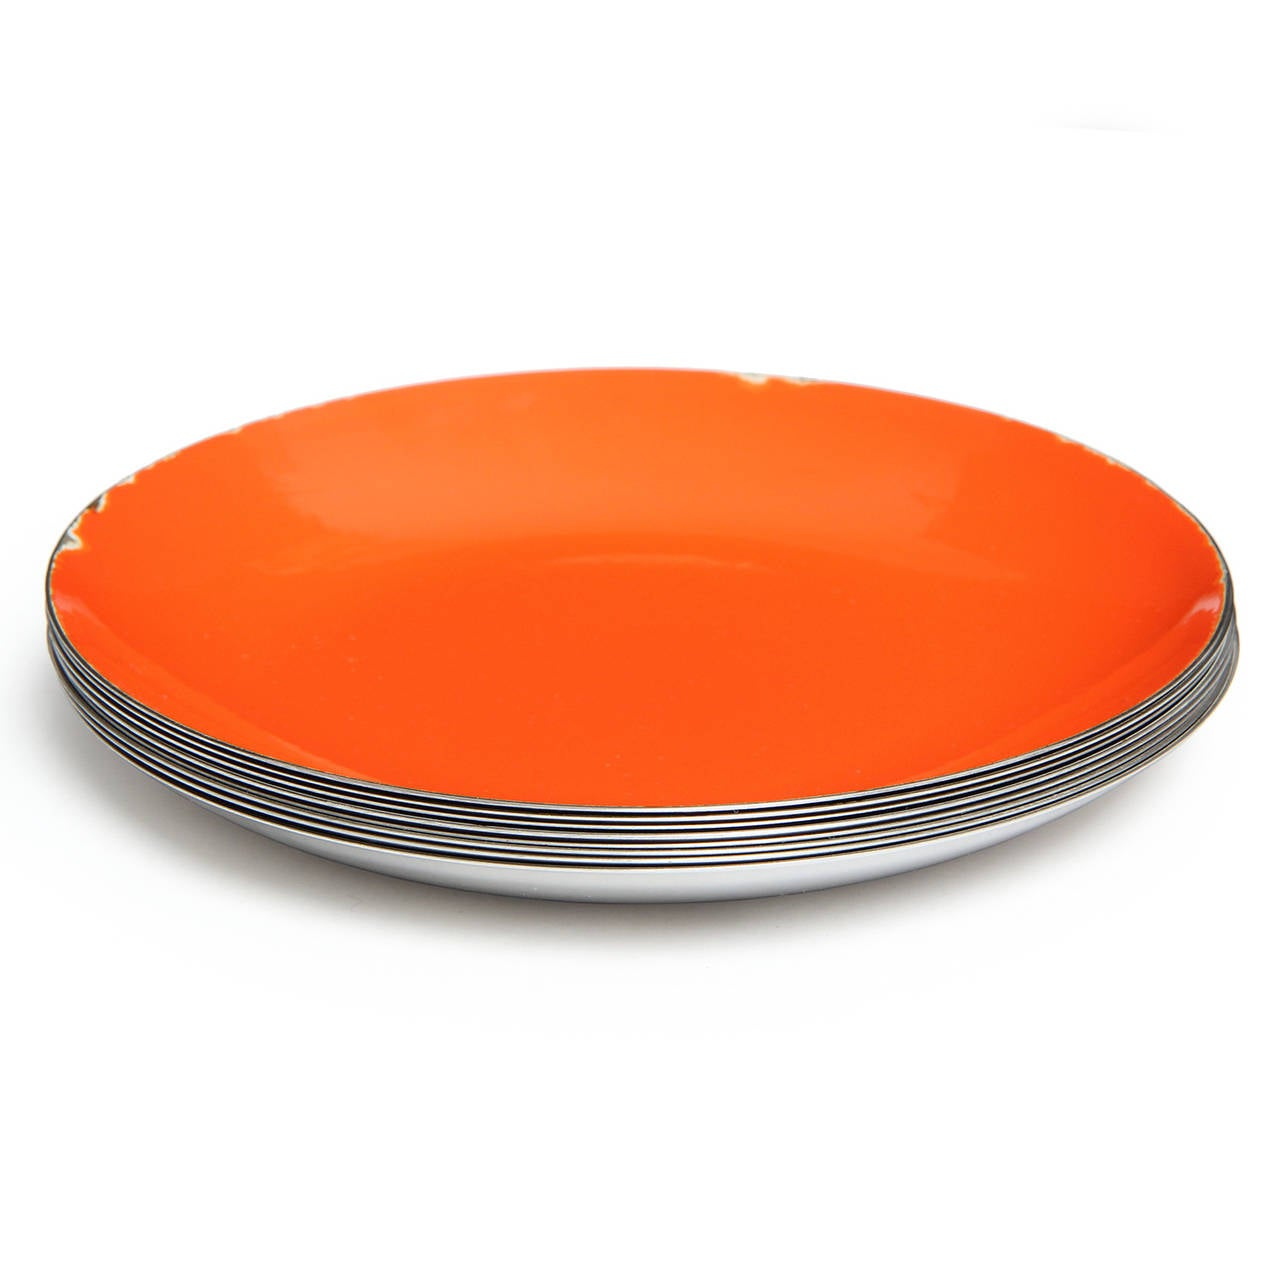 A graphic and elegant shallow enamel over polished stainless steel bowl. Originally distributed by Knoll International.